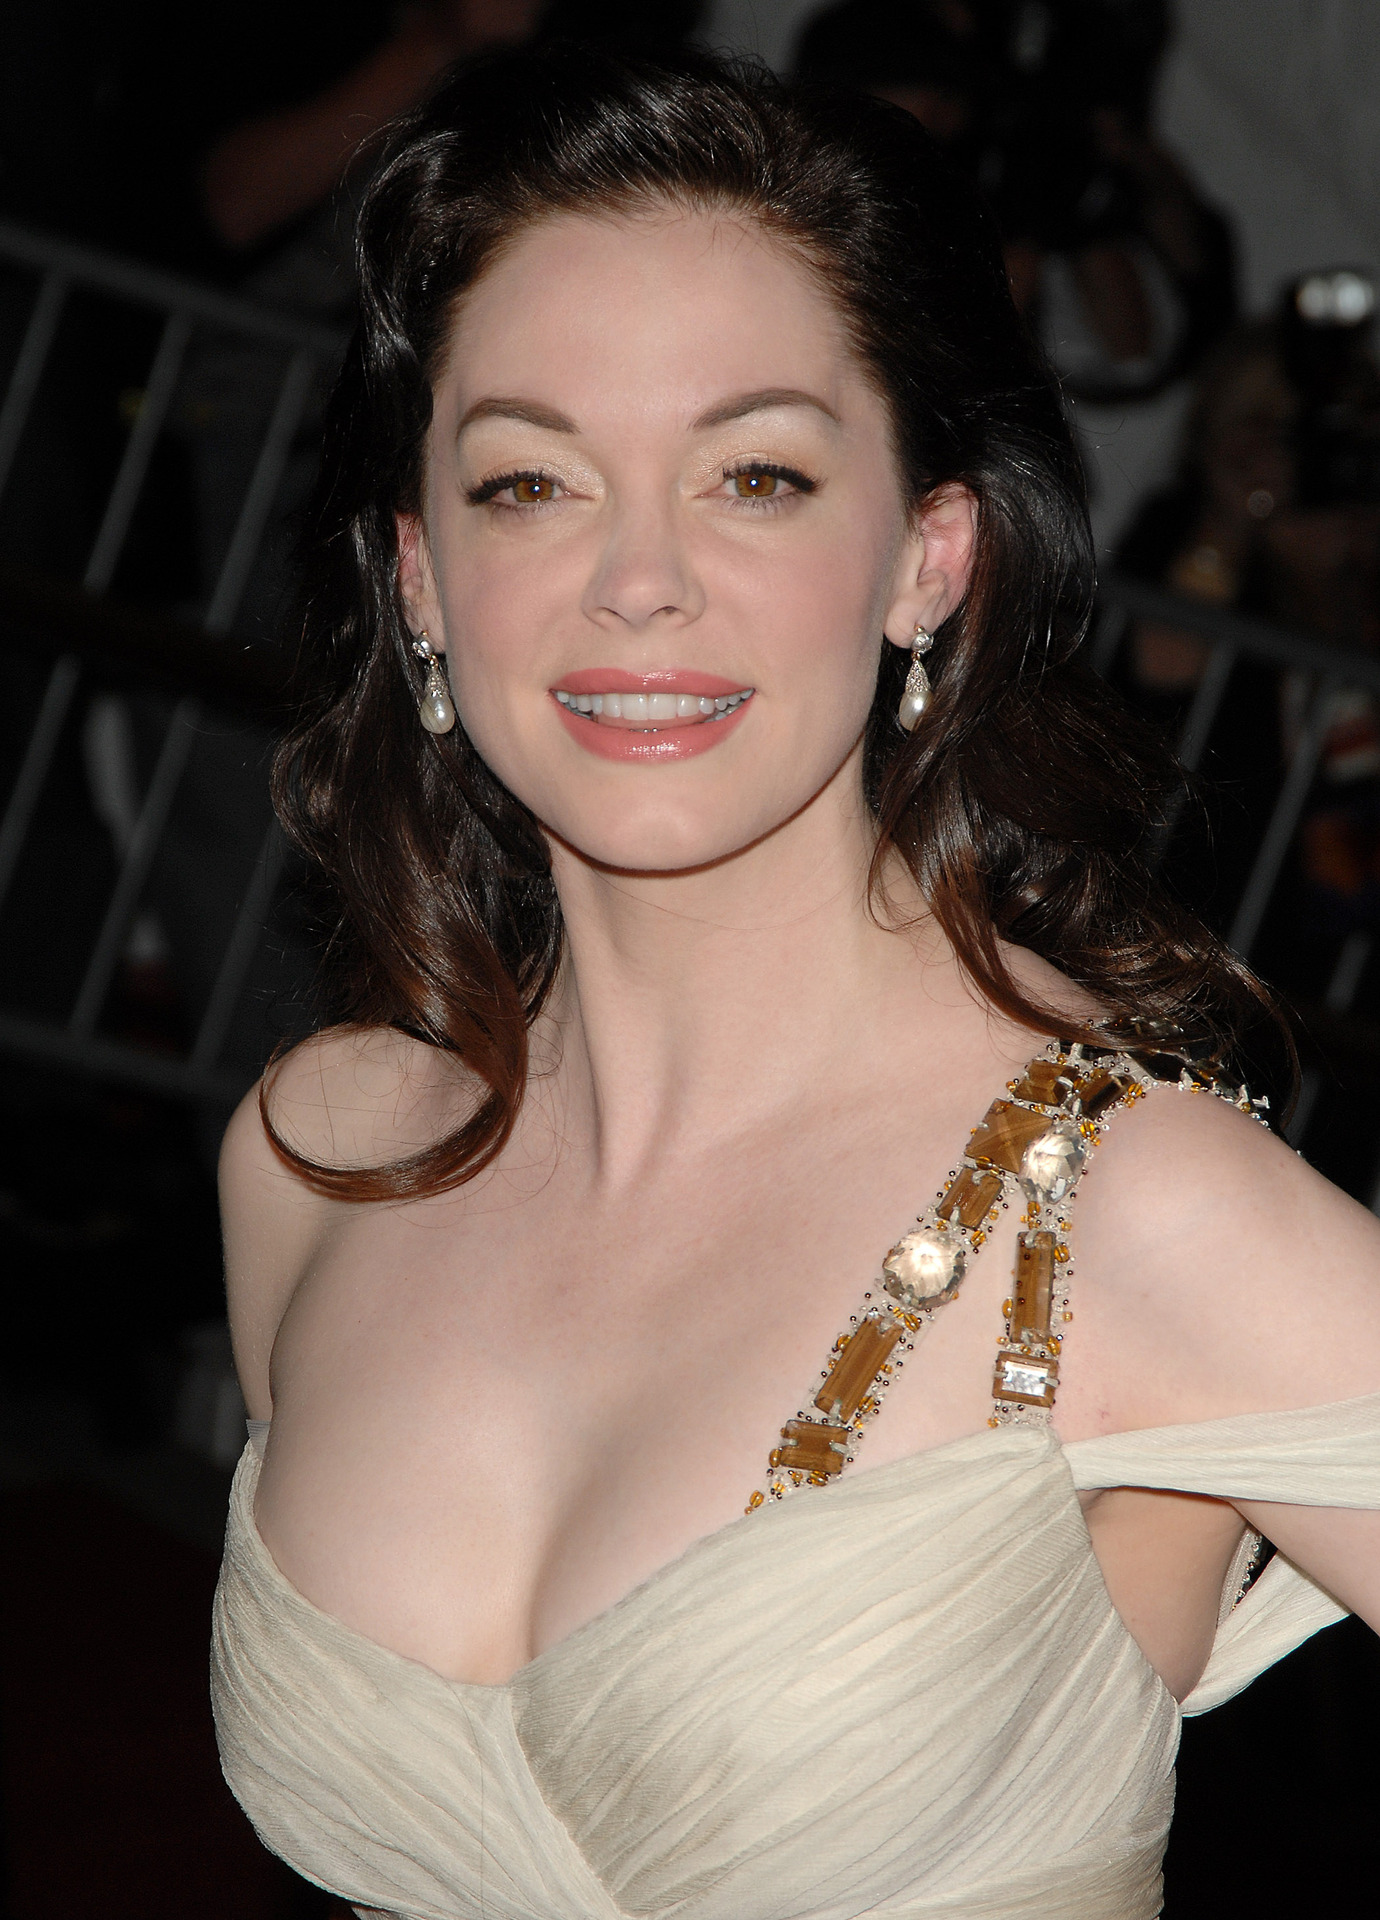 rose mcgowan pictures - photo #13